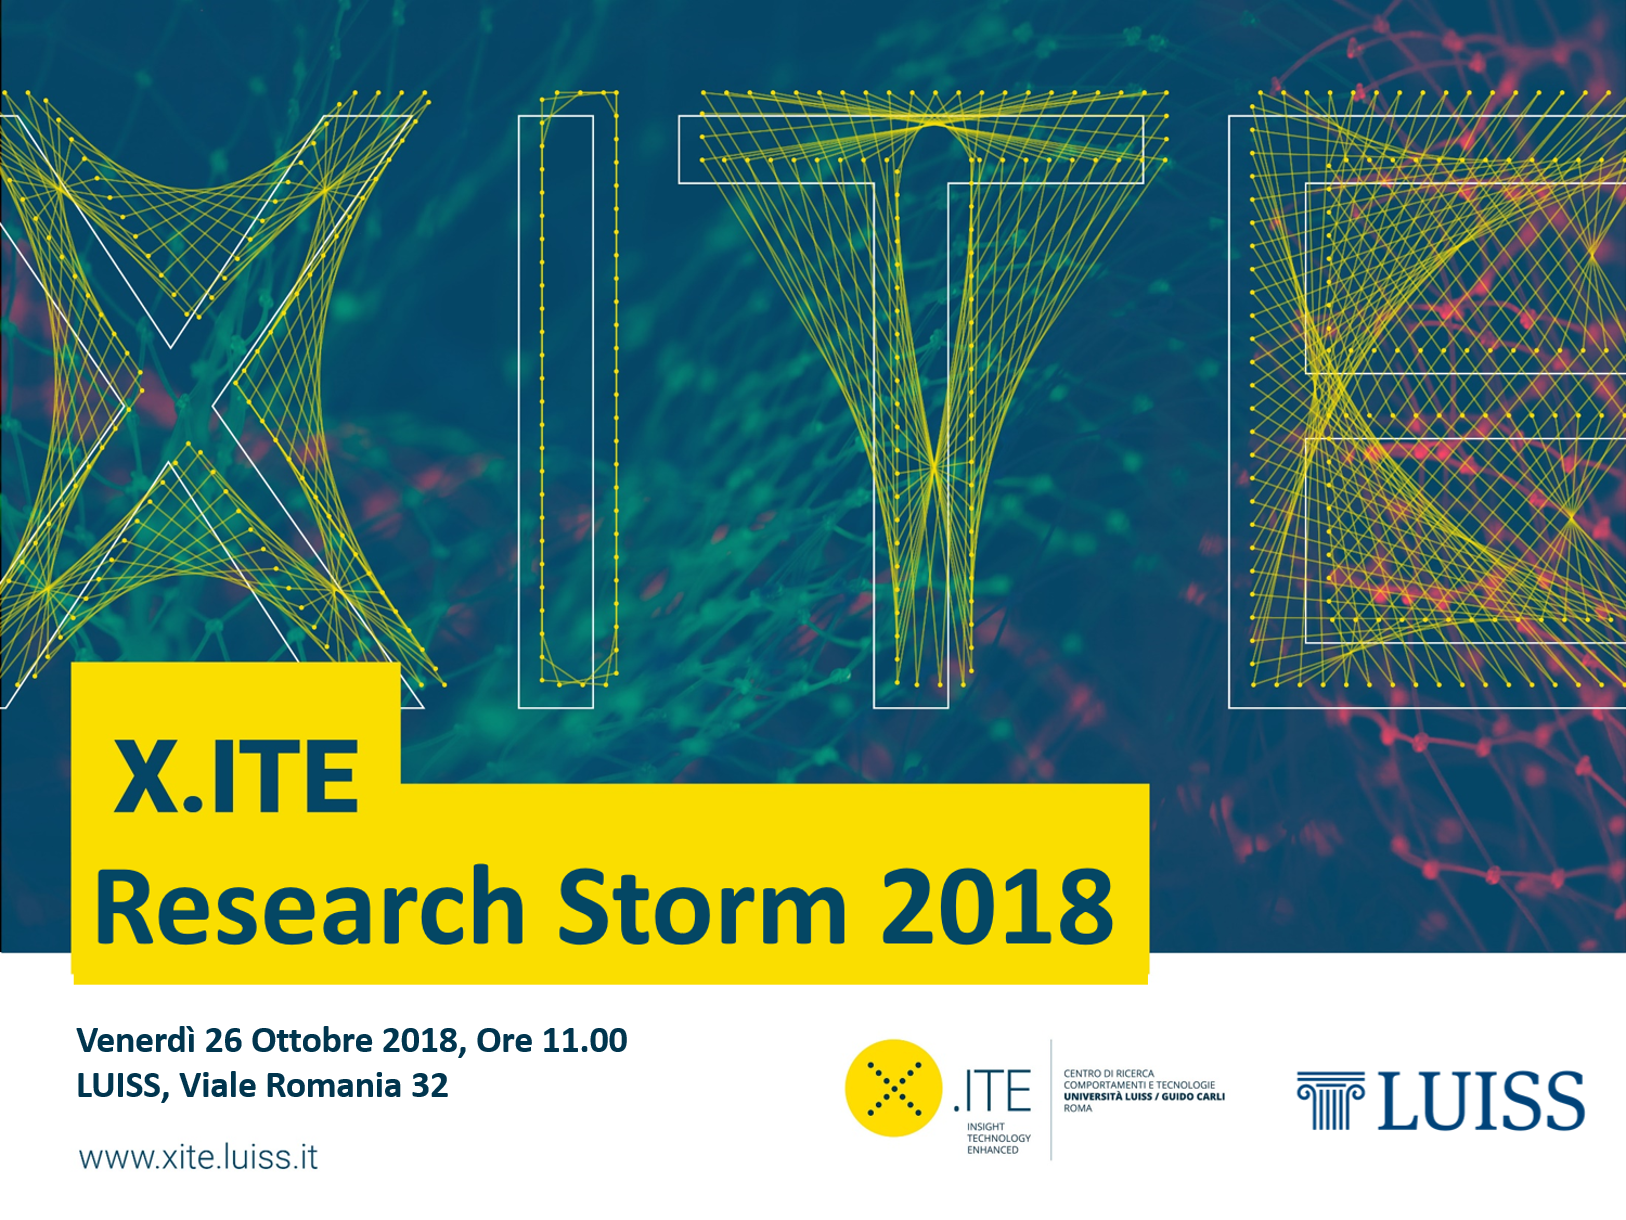 III X.ITE Research Storm 2018